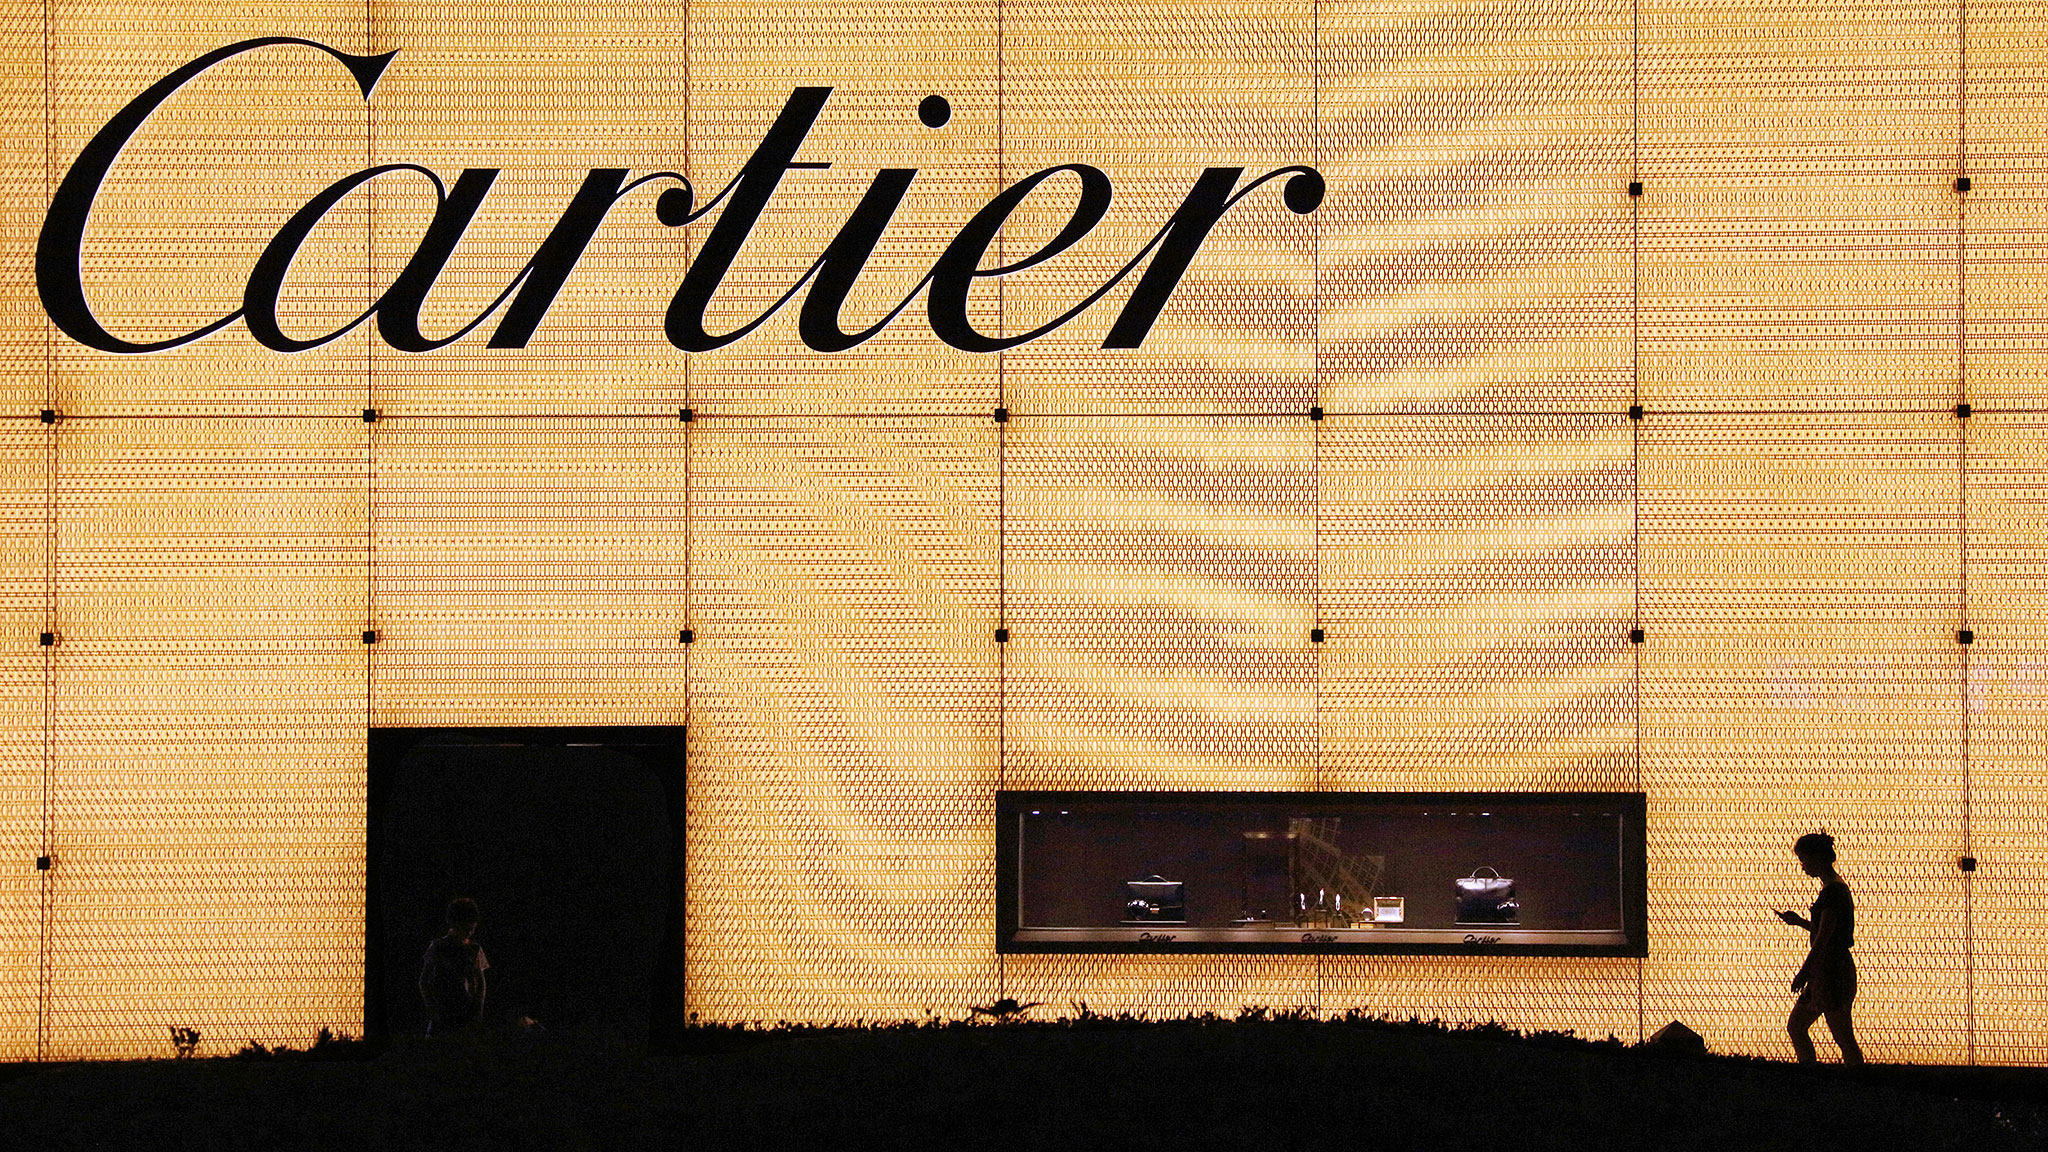 Cartier talks about cracking China with WeChat